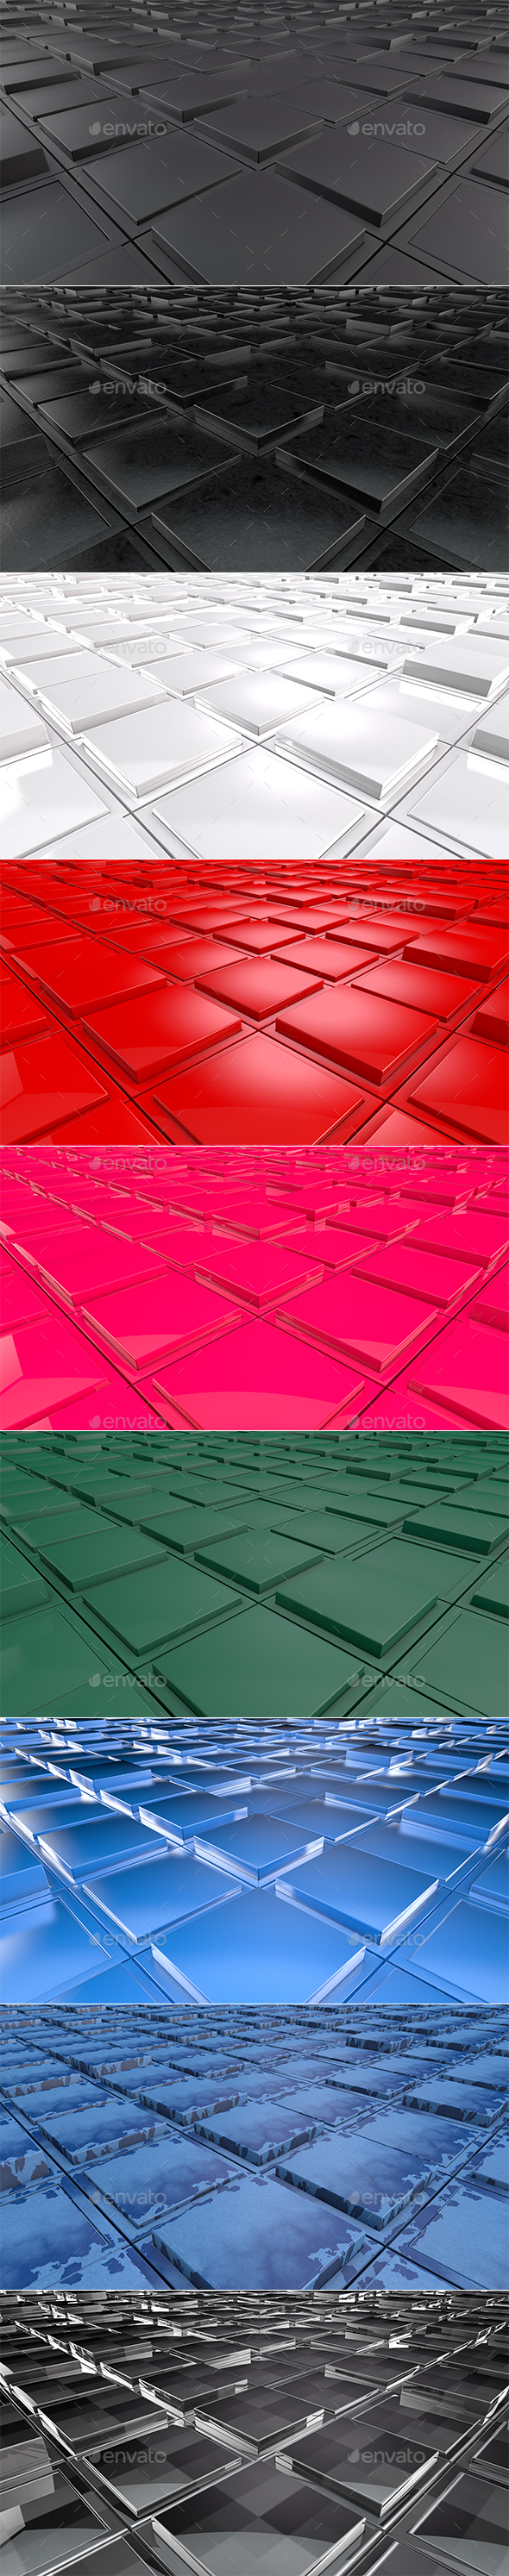 3D Cube Background - 3D Backgrounds